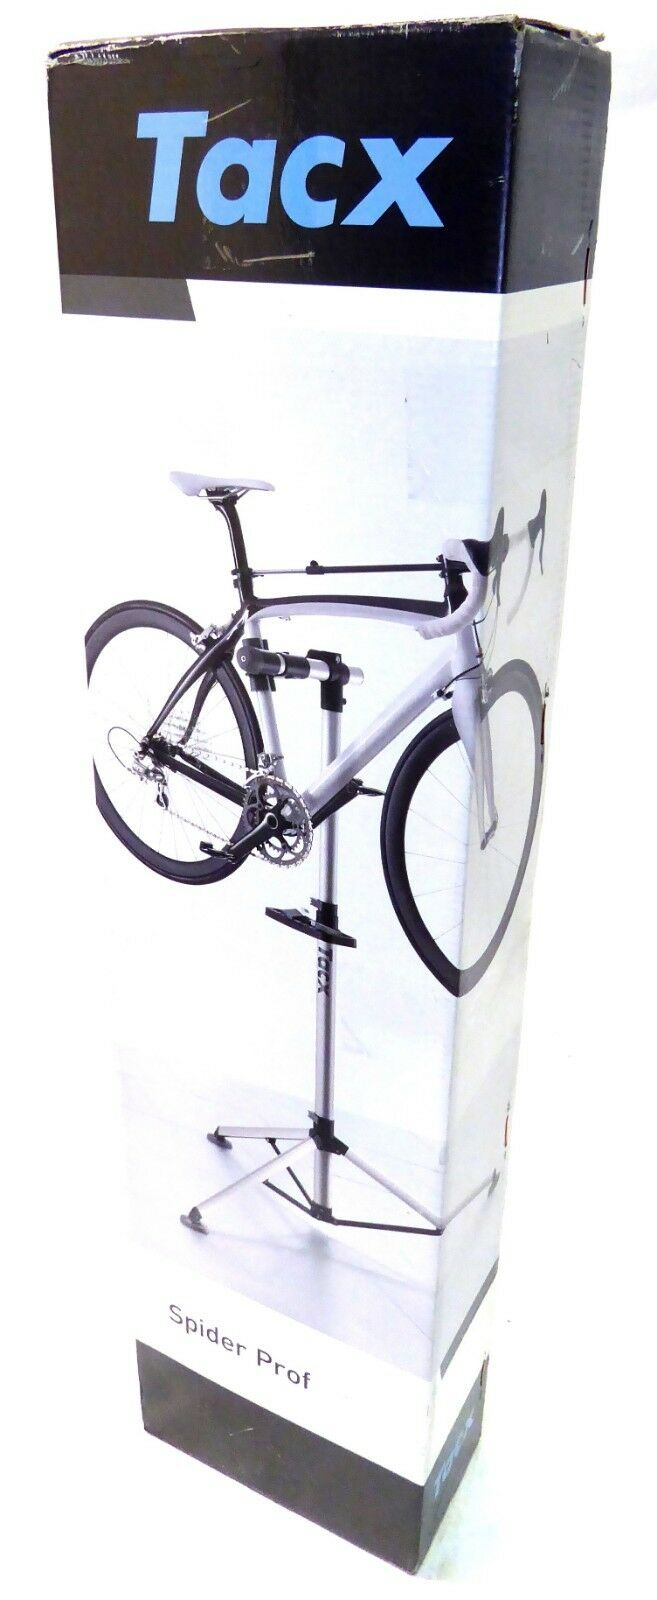 Tacx Spider Prof Bicycle Repair Stand